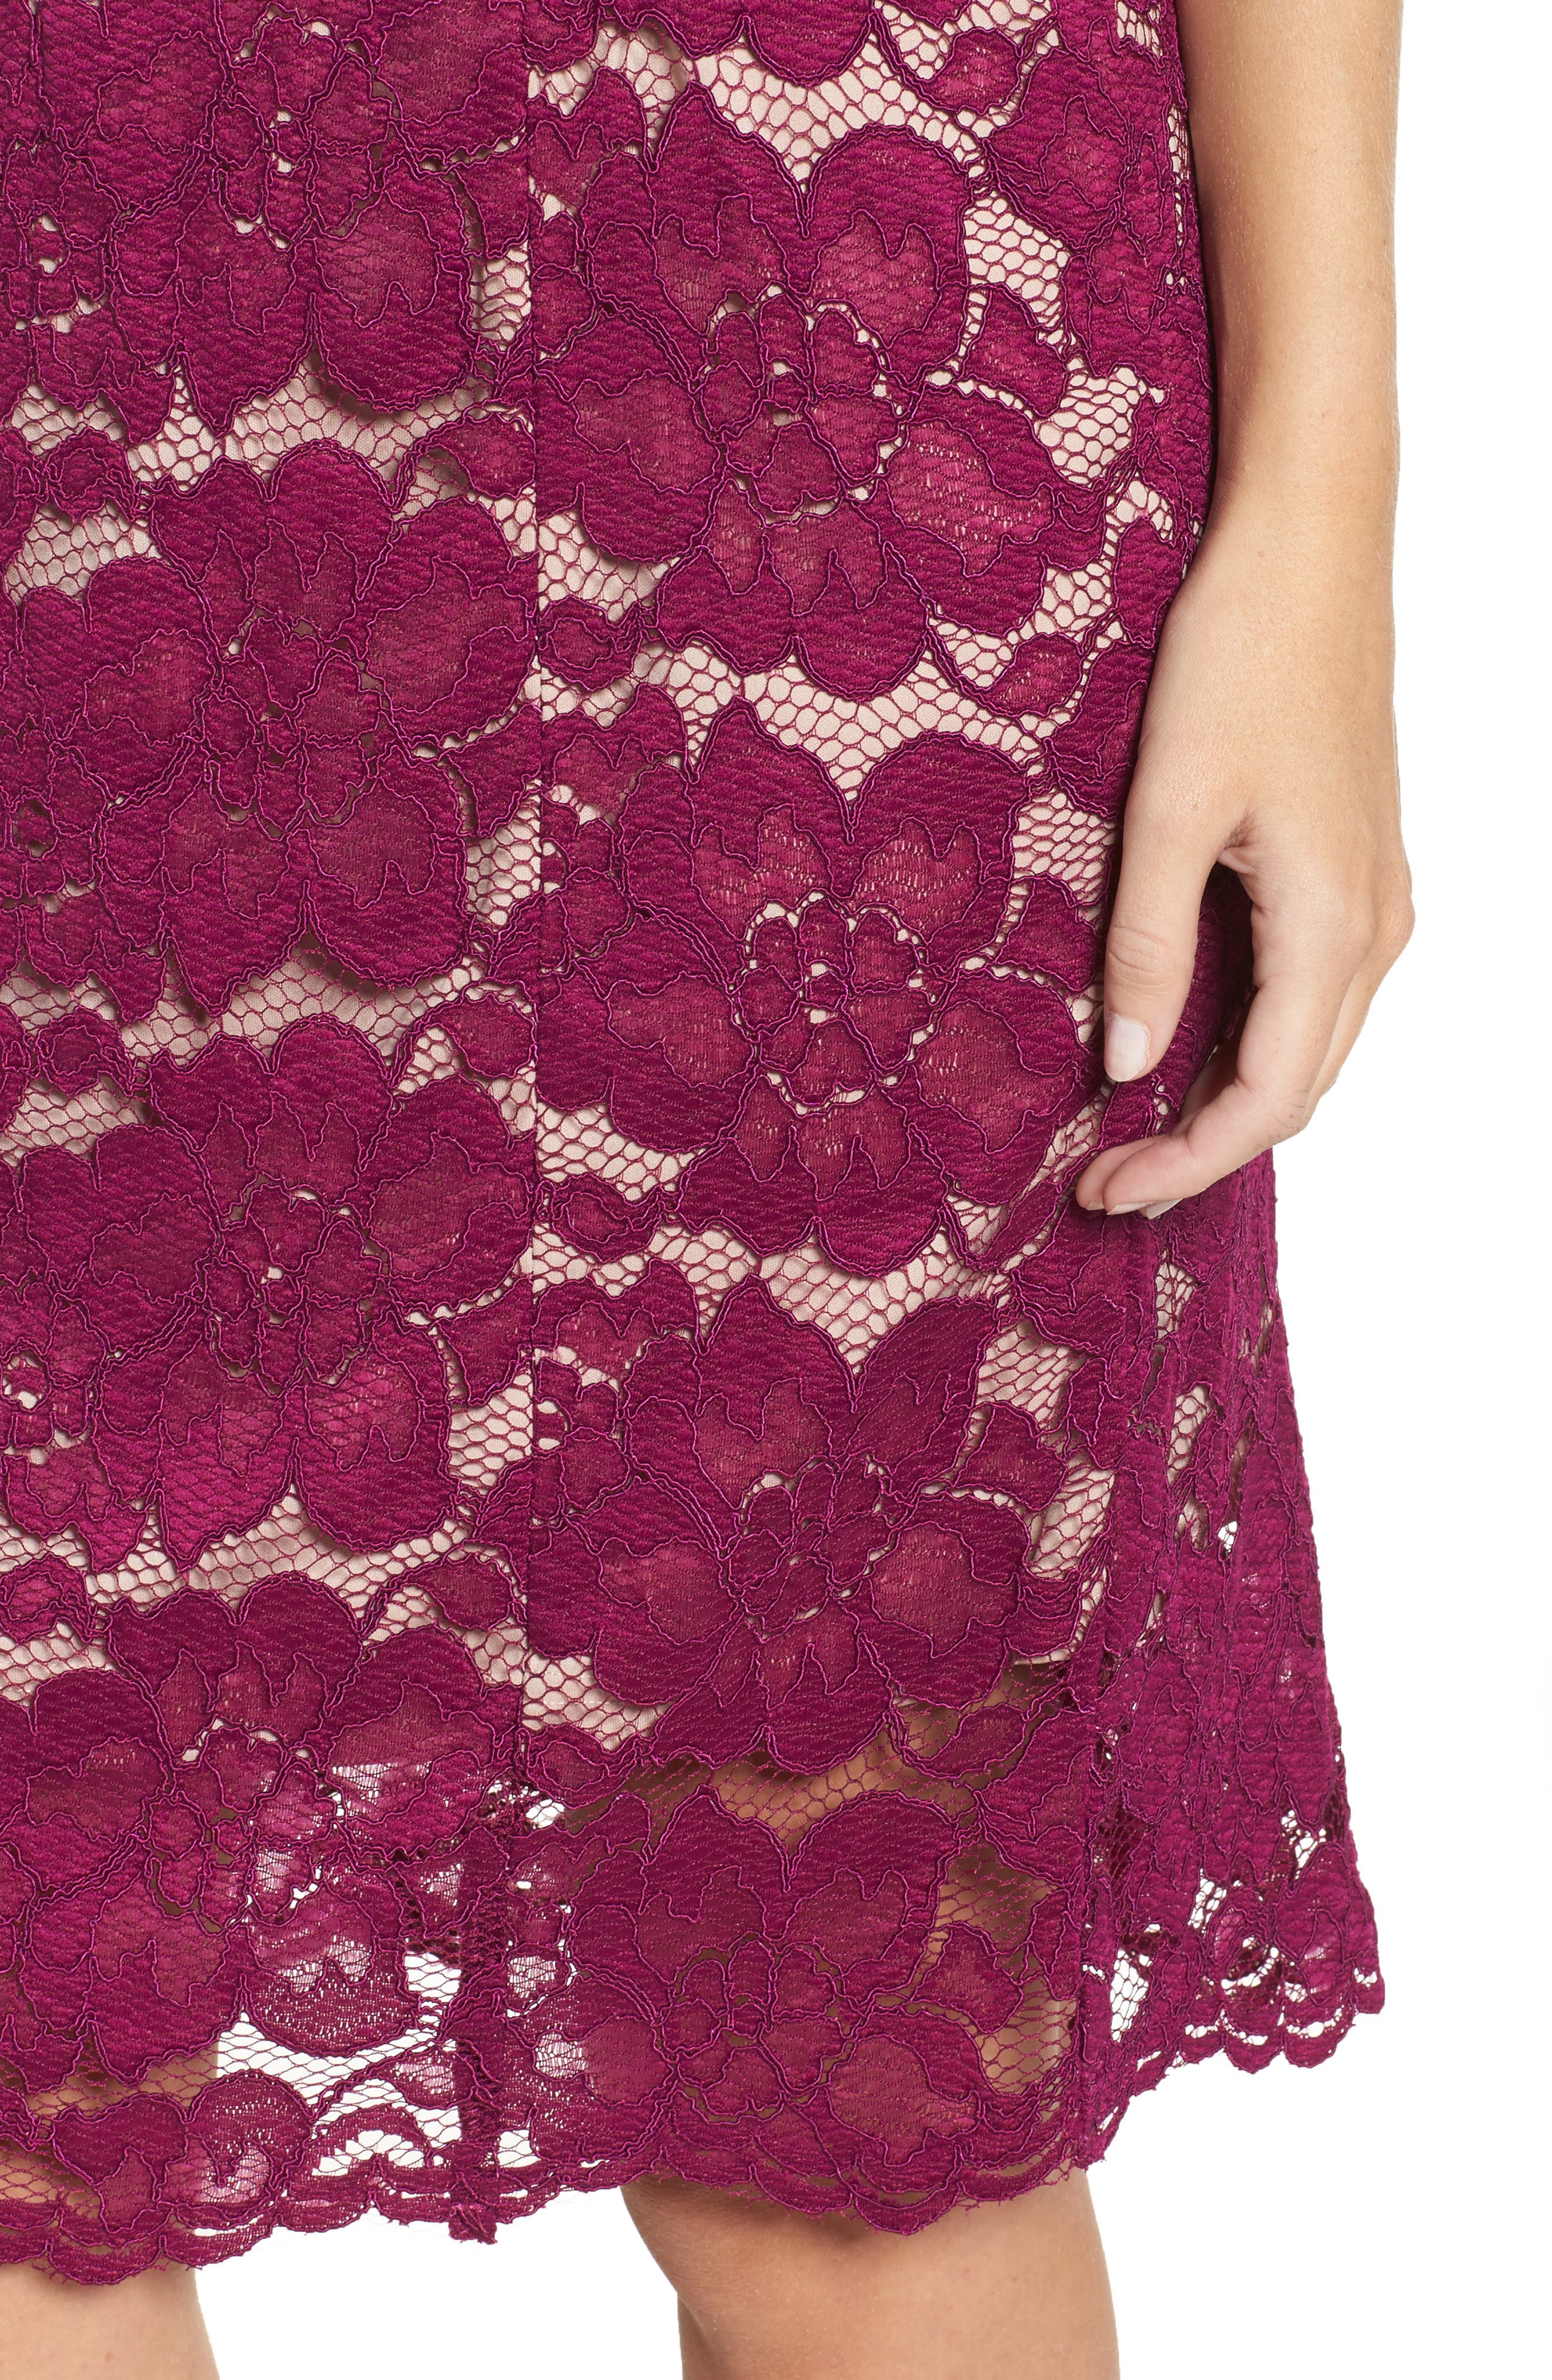 Twin Flower Lace Sheath Dress,                             Alternate thumbnail 4, color,                             Burgundy